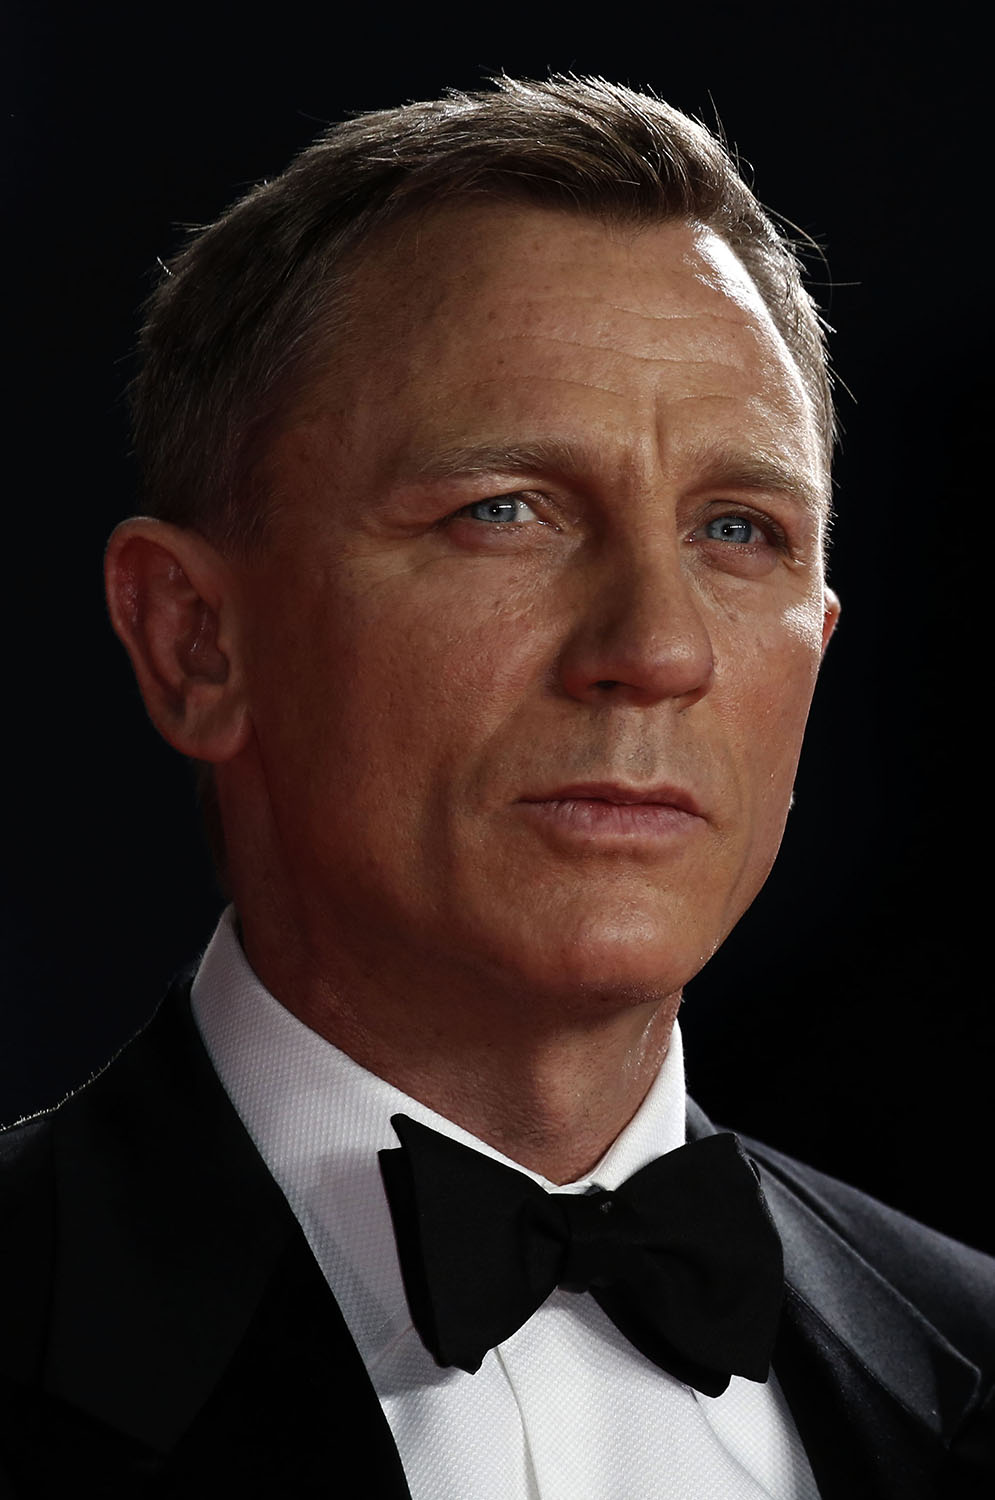 """LONDON, ENGLAND - OCTOBER 26: Daniel Craig attends the Royal Film Performance of """"Spectre"""" at Royal Albert Hall on October 26, 2015 in London, England. (Photo by John Phillips/Getty Images)"""